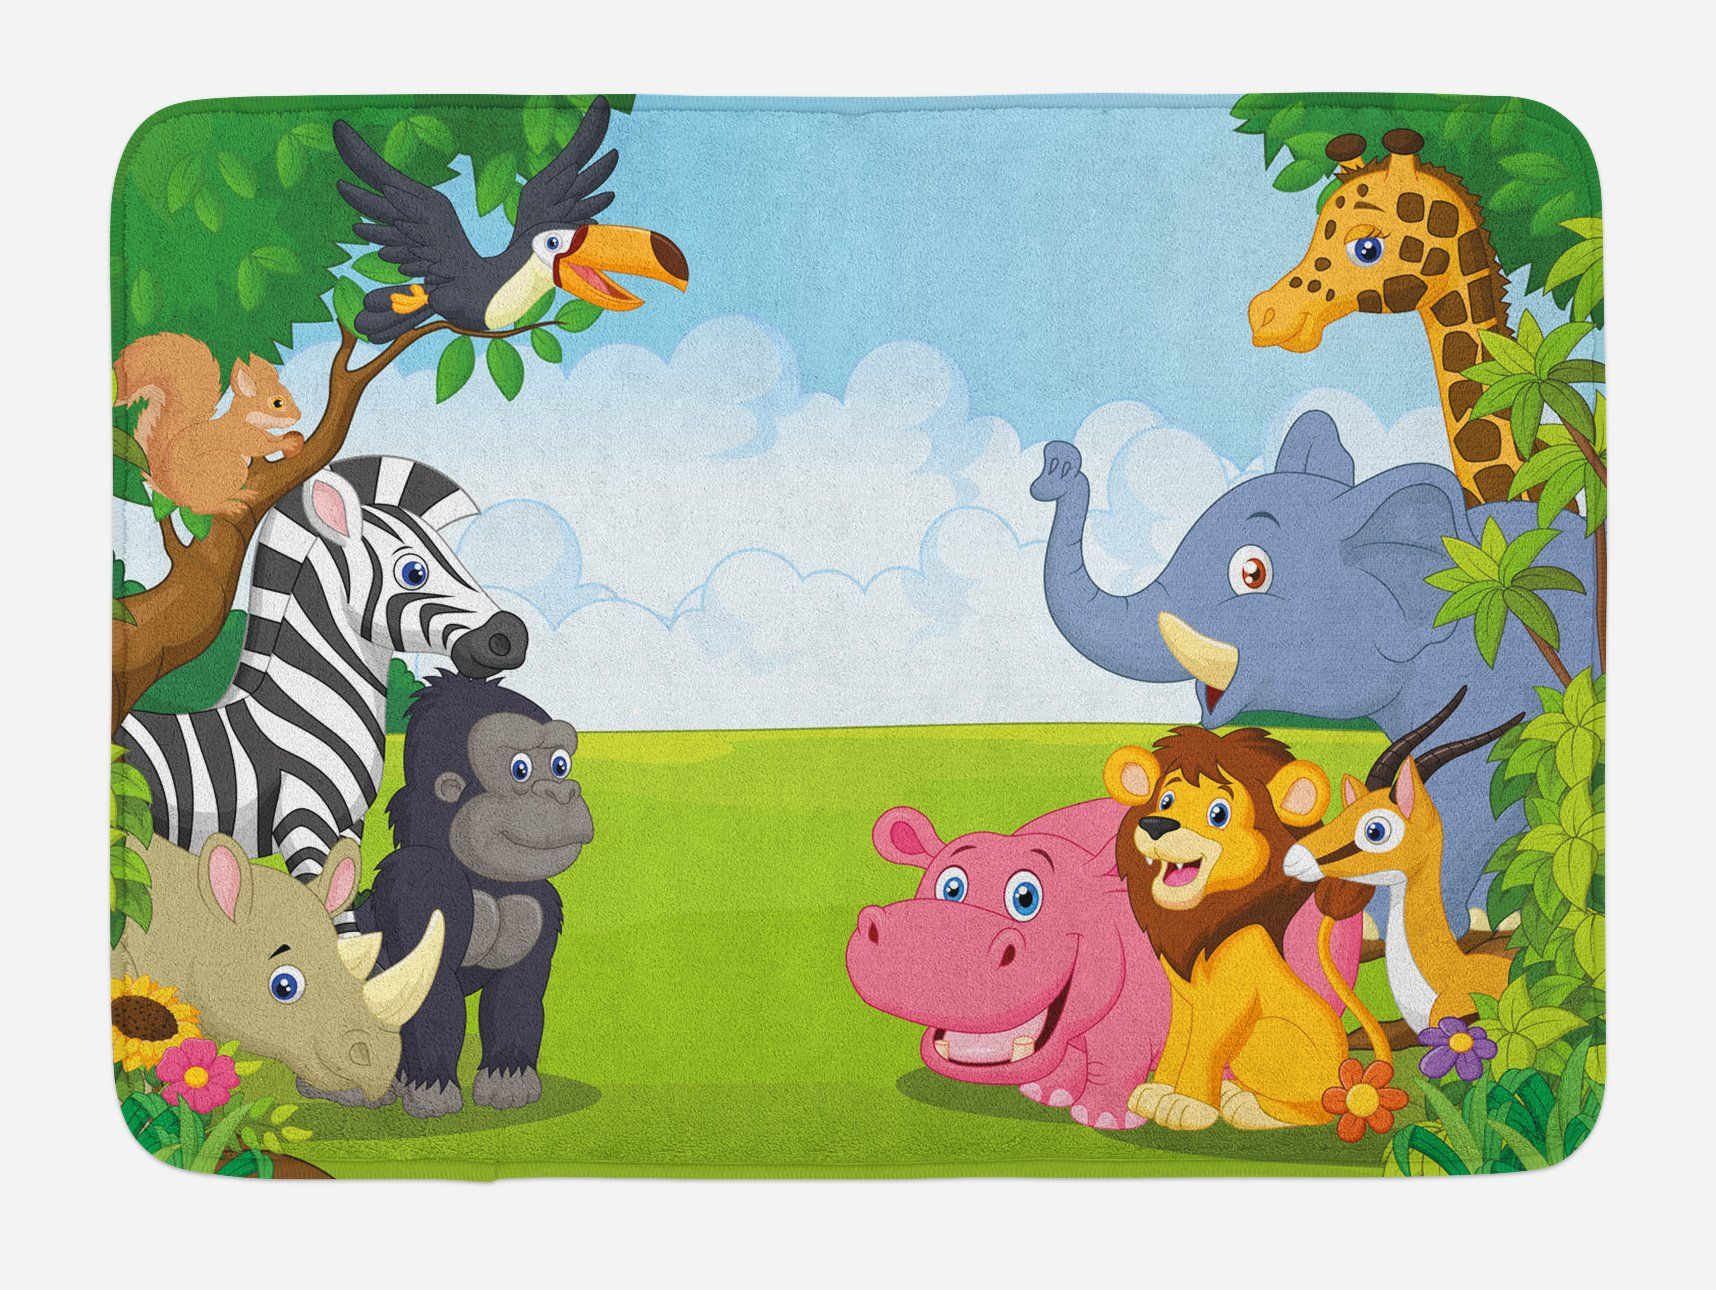 Ambesonne Kids Bath Mat, Kids Design Children Nursery Room Safari Themed Cartoon Animals Image Artwork Print, Plush Bathroom Decor Mat with Non Slip Backing, 29.5 W X 17.5 W inches, Multicolor